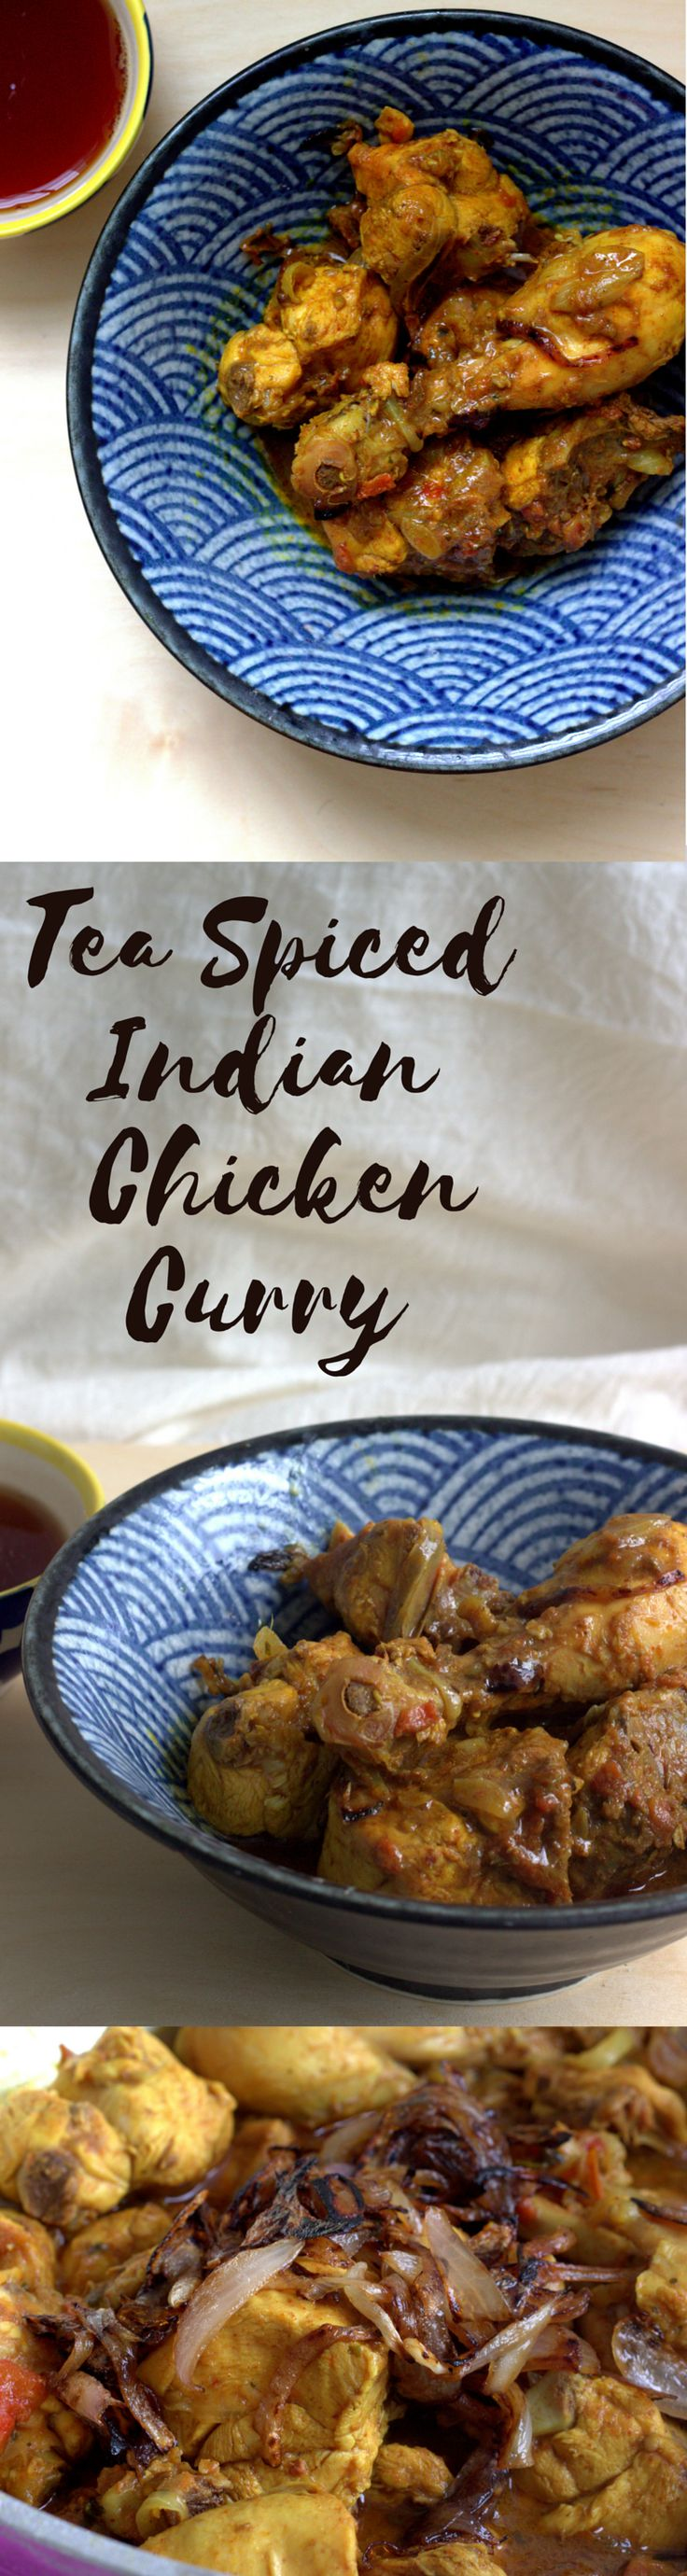 358 best side dish recipes images on pinterest side dish recipes an easy chicken curry spiced with indian tea and tips on how to tenderise your chicken forumfinder Images